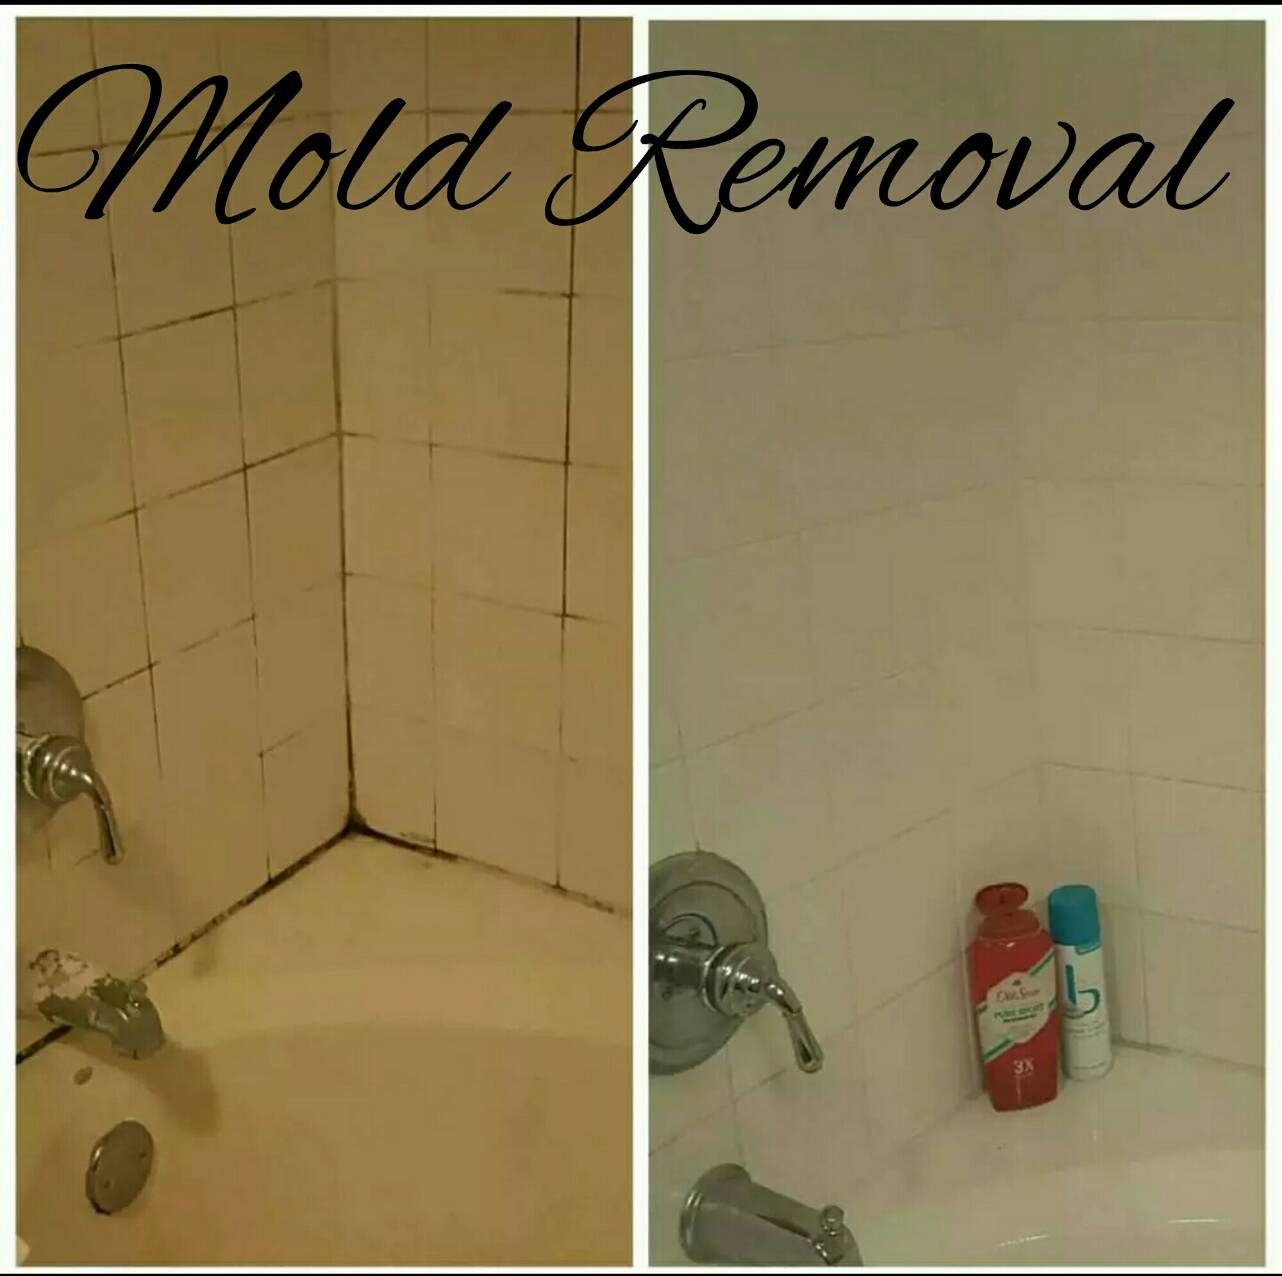 How to Mold Removal, Remove Calcium Build Up, Remove Hard